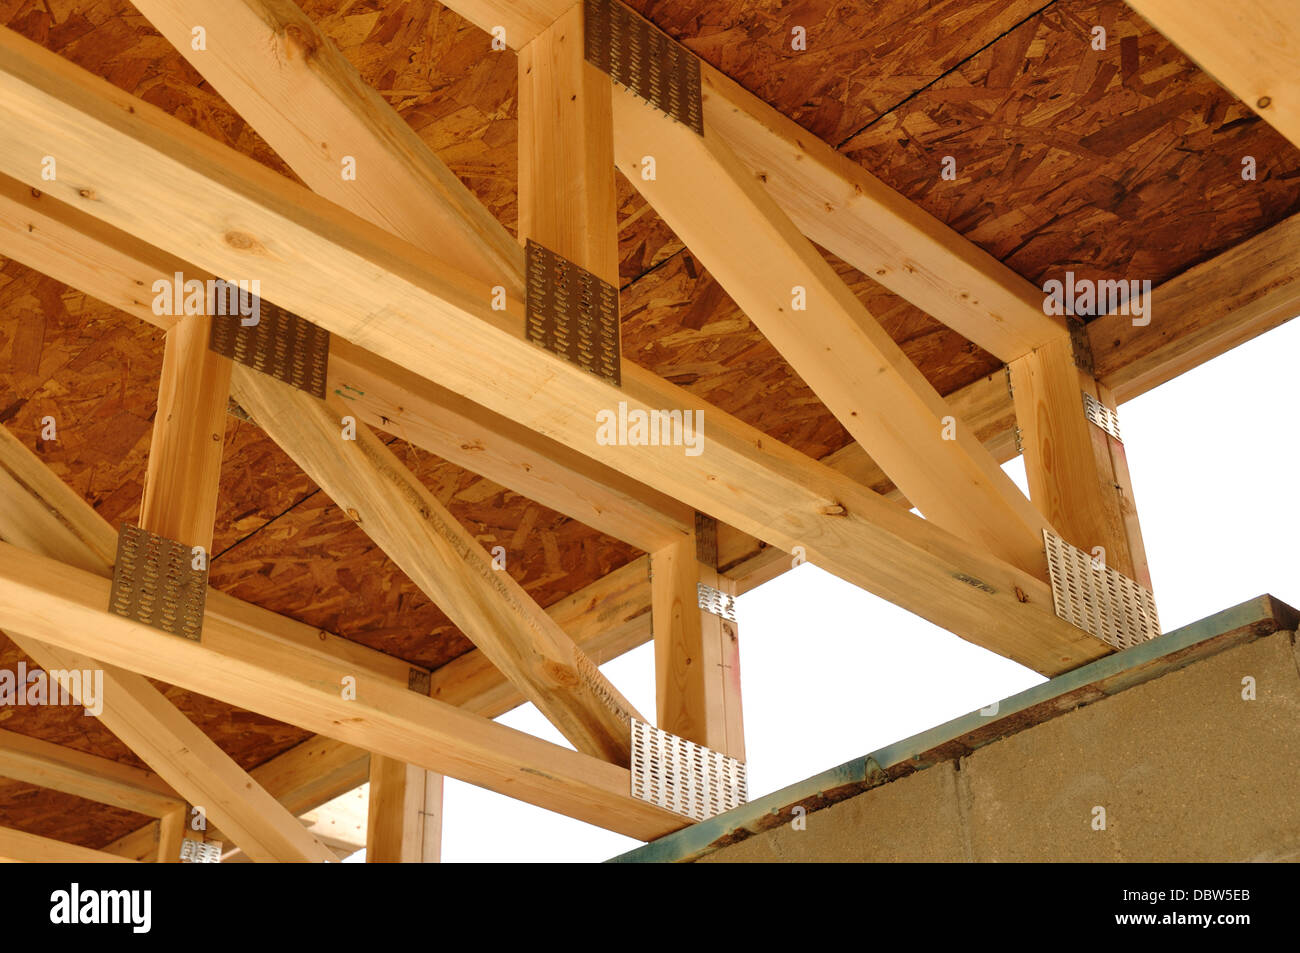 Floor  ceiling joists  trusses in a new house under